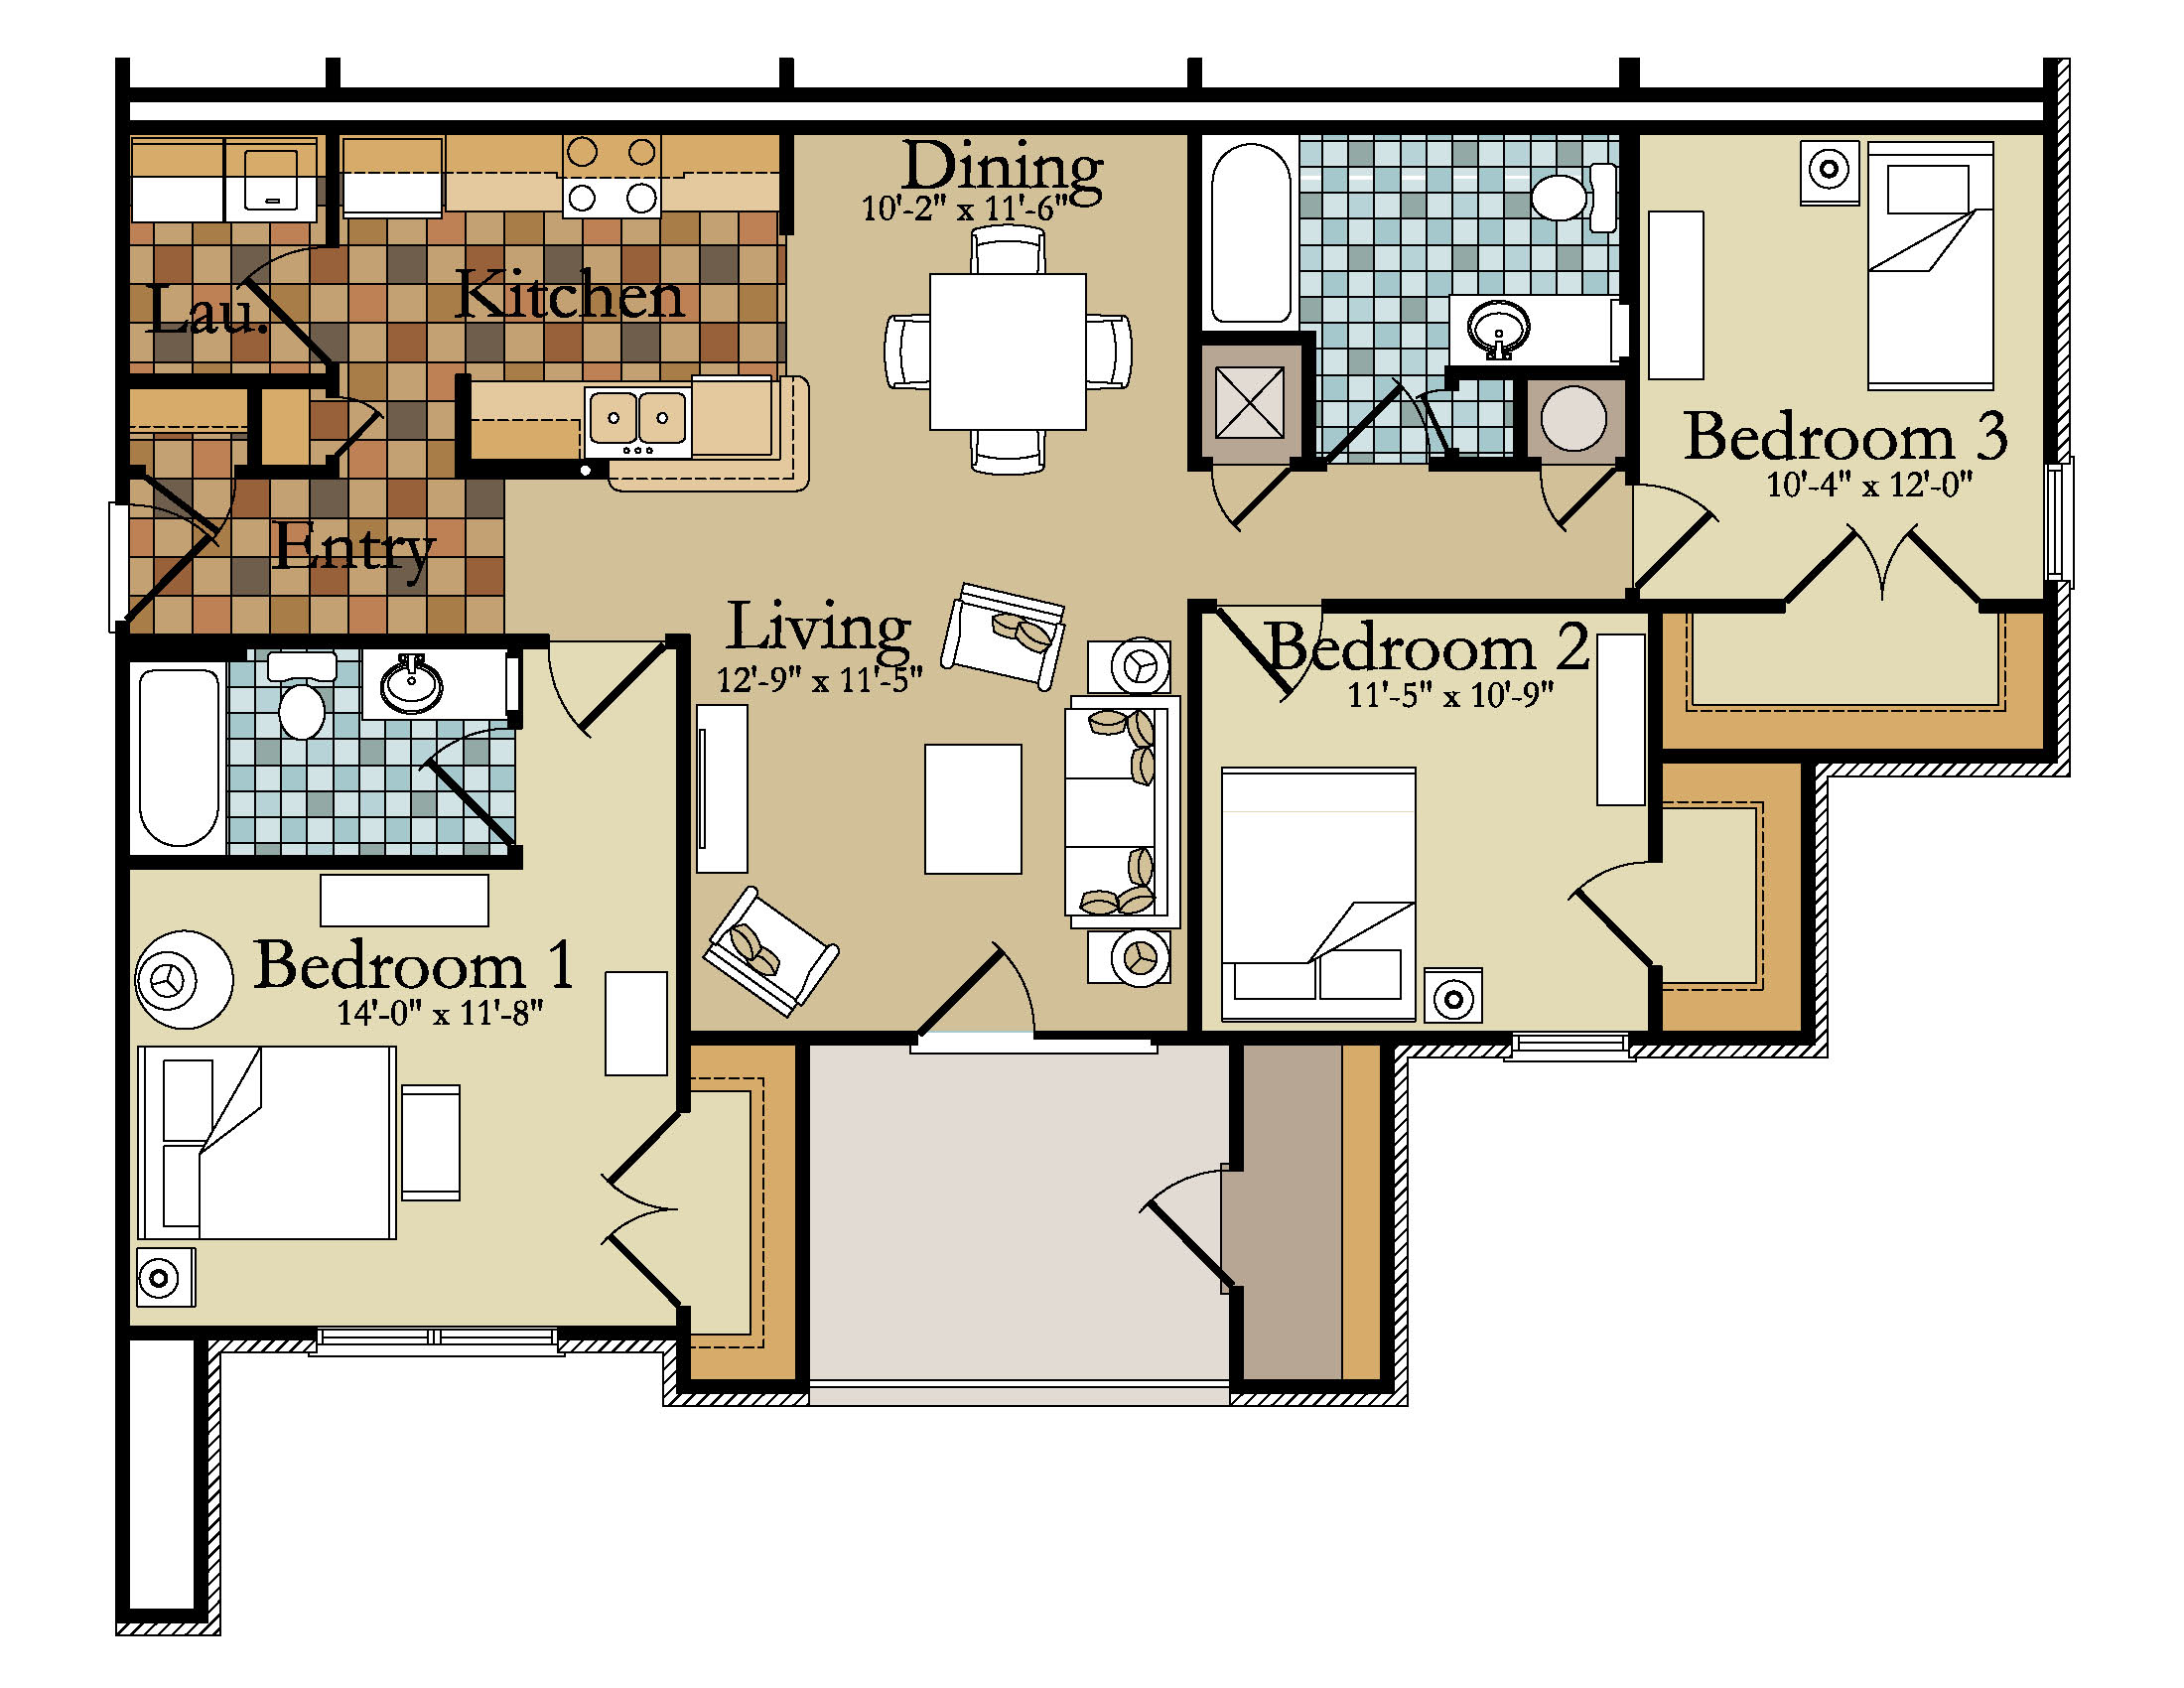 brilliant 3 bedroom condo floor plans.  TBG Residential Greystone